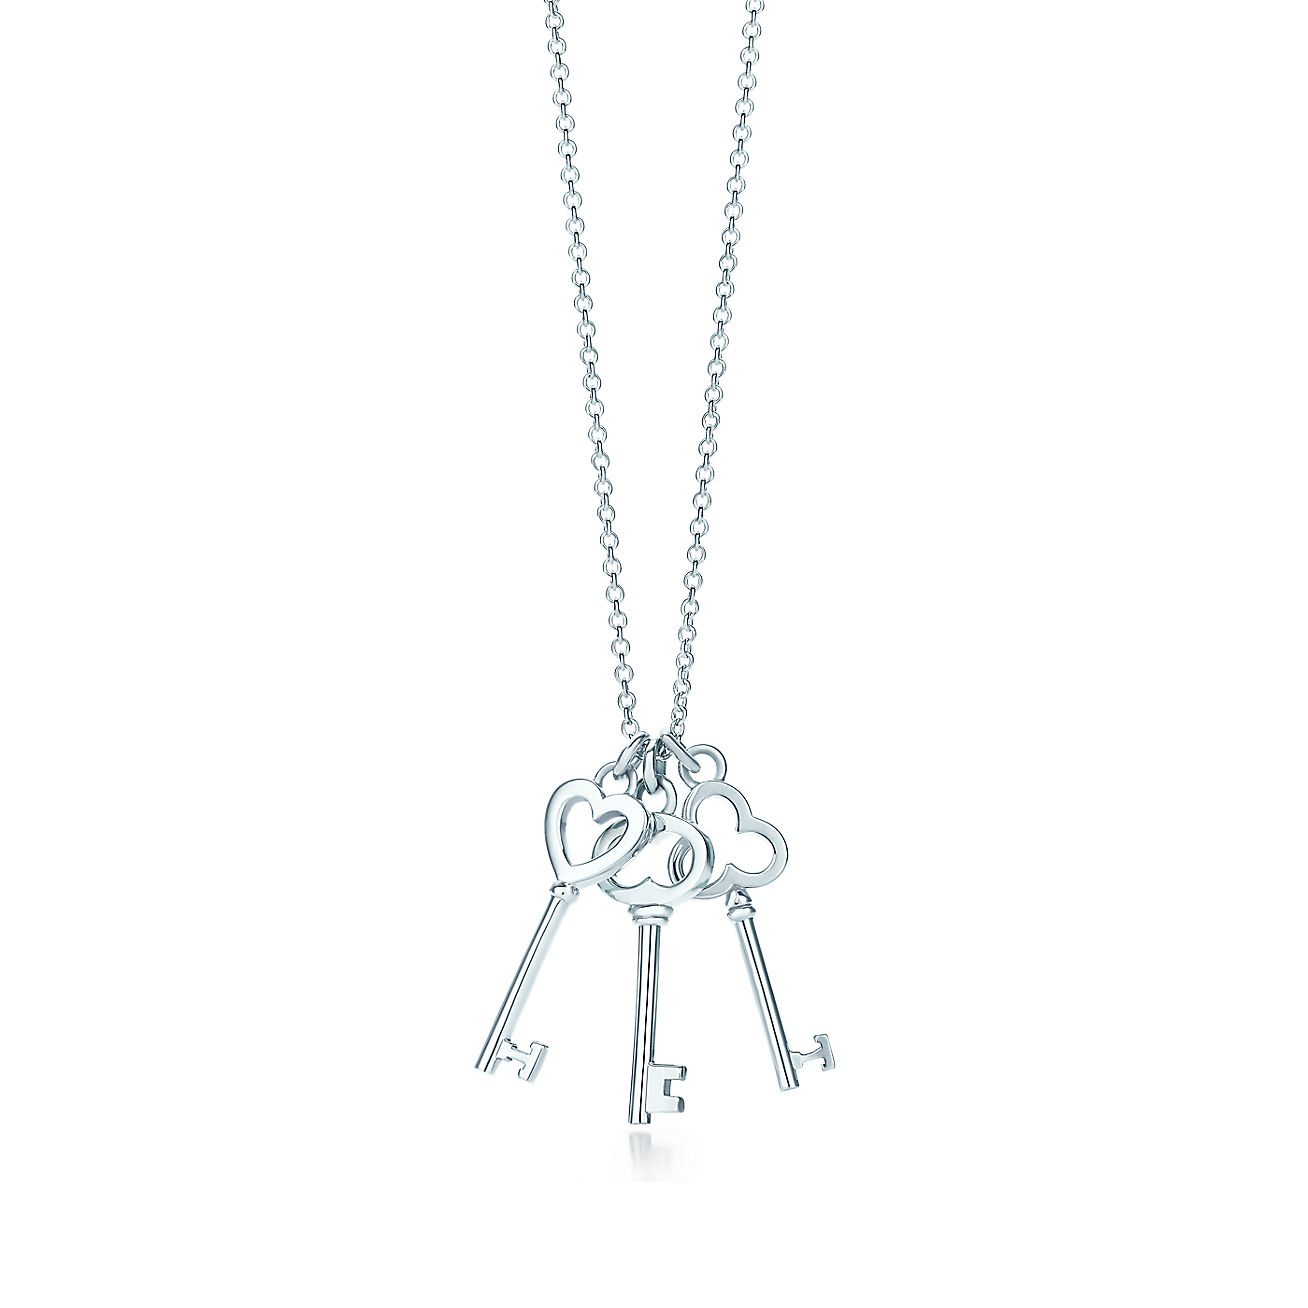 Tiffany Keys mini three-key pendant in sterling silver. | Tiffany ...